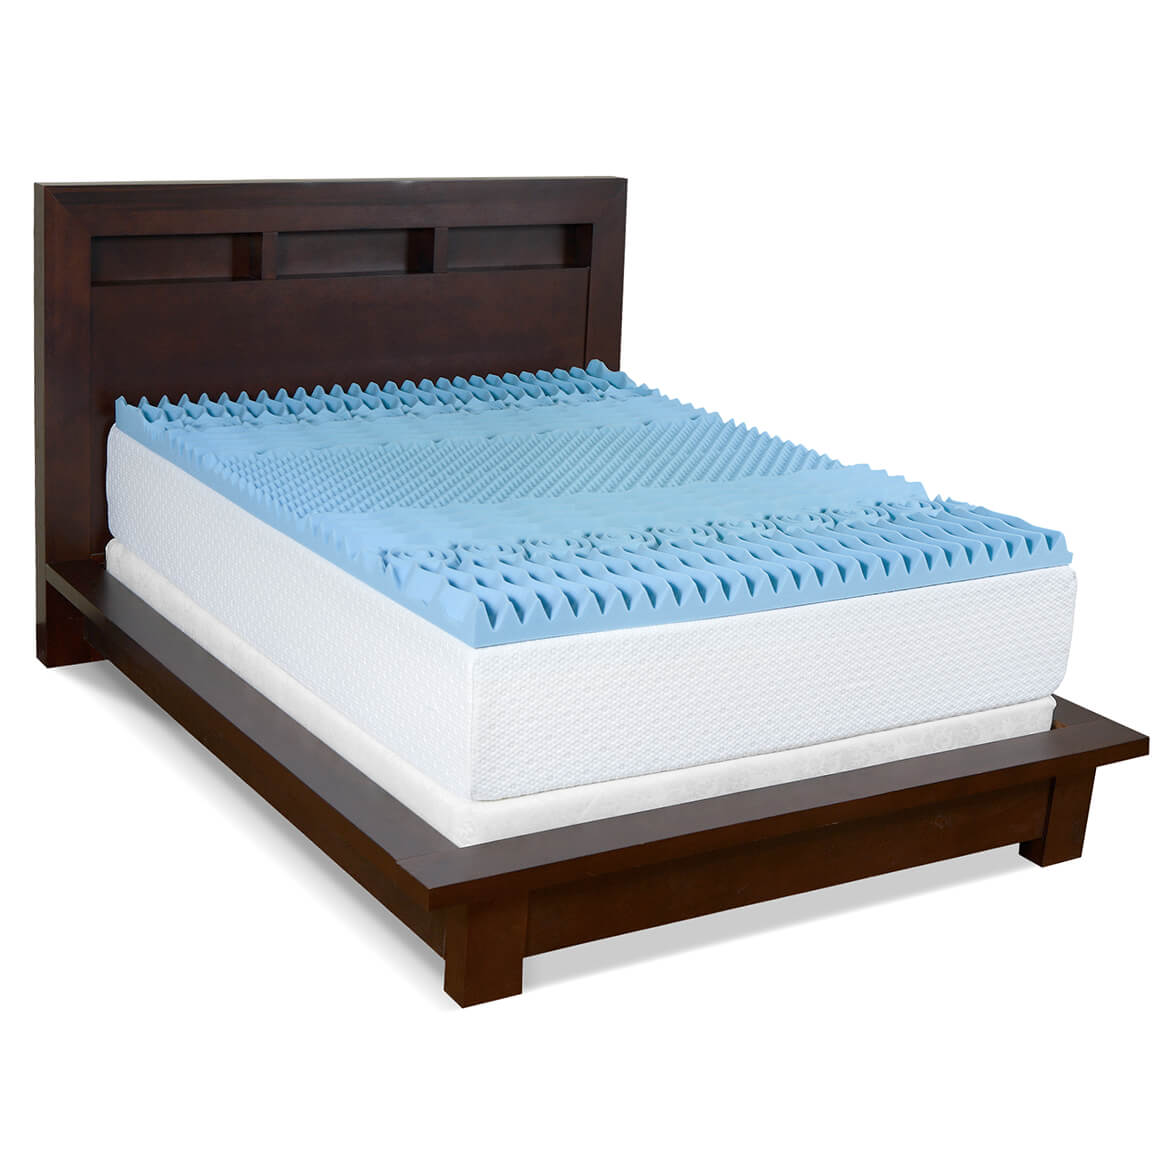 "3"" Gel Memory Foam 7-Zone Mattress Topper-358264"